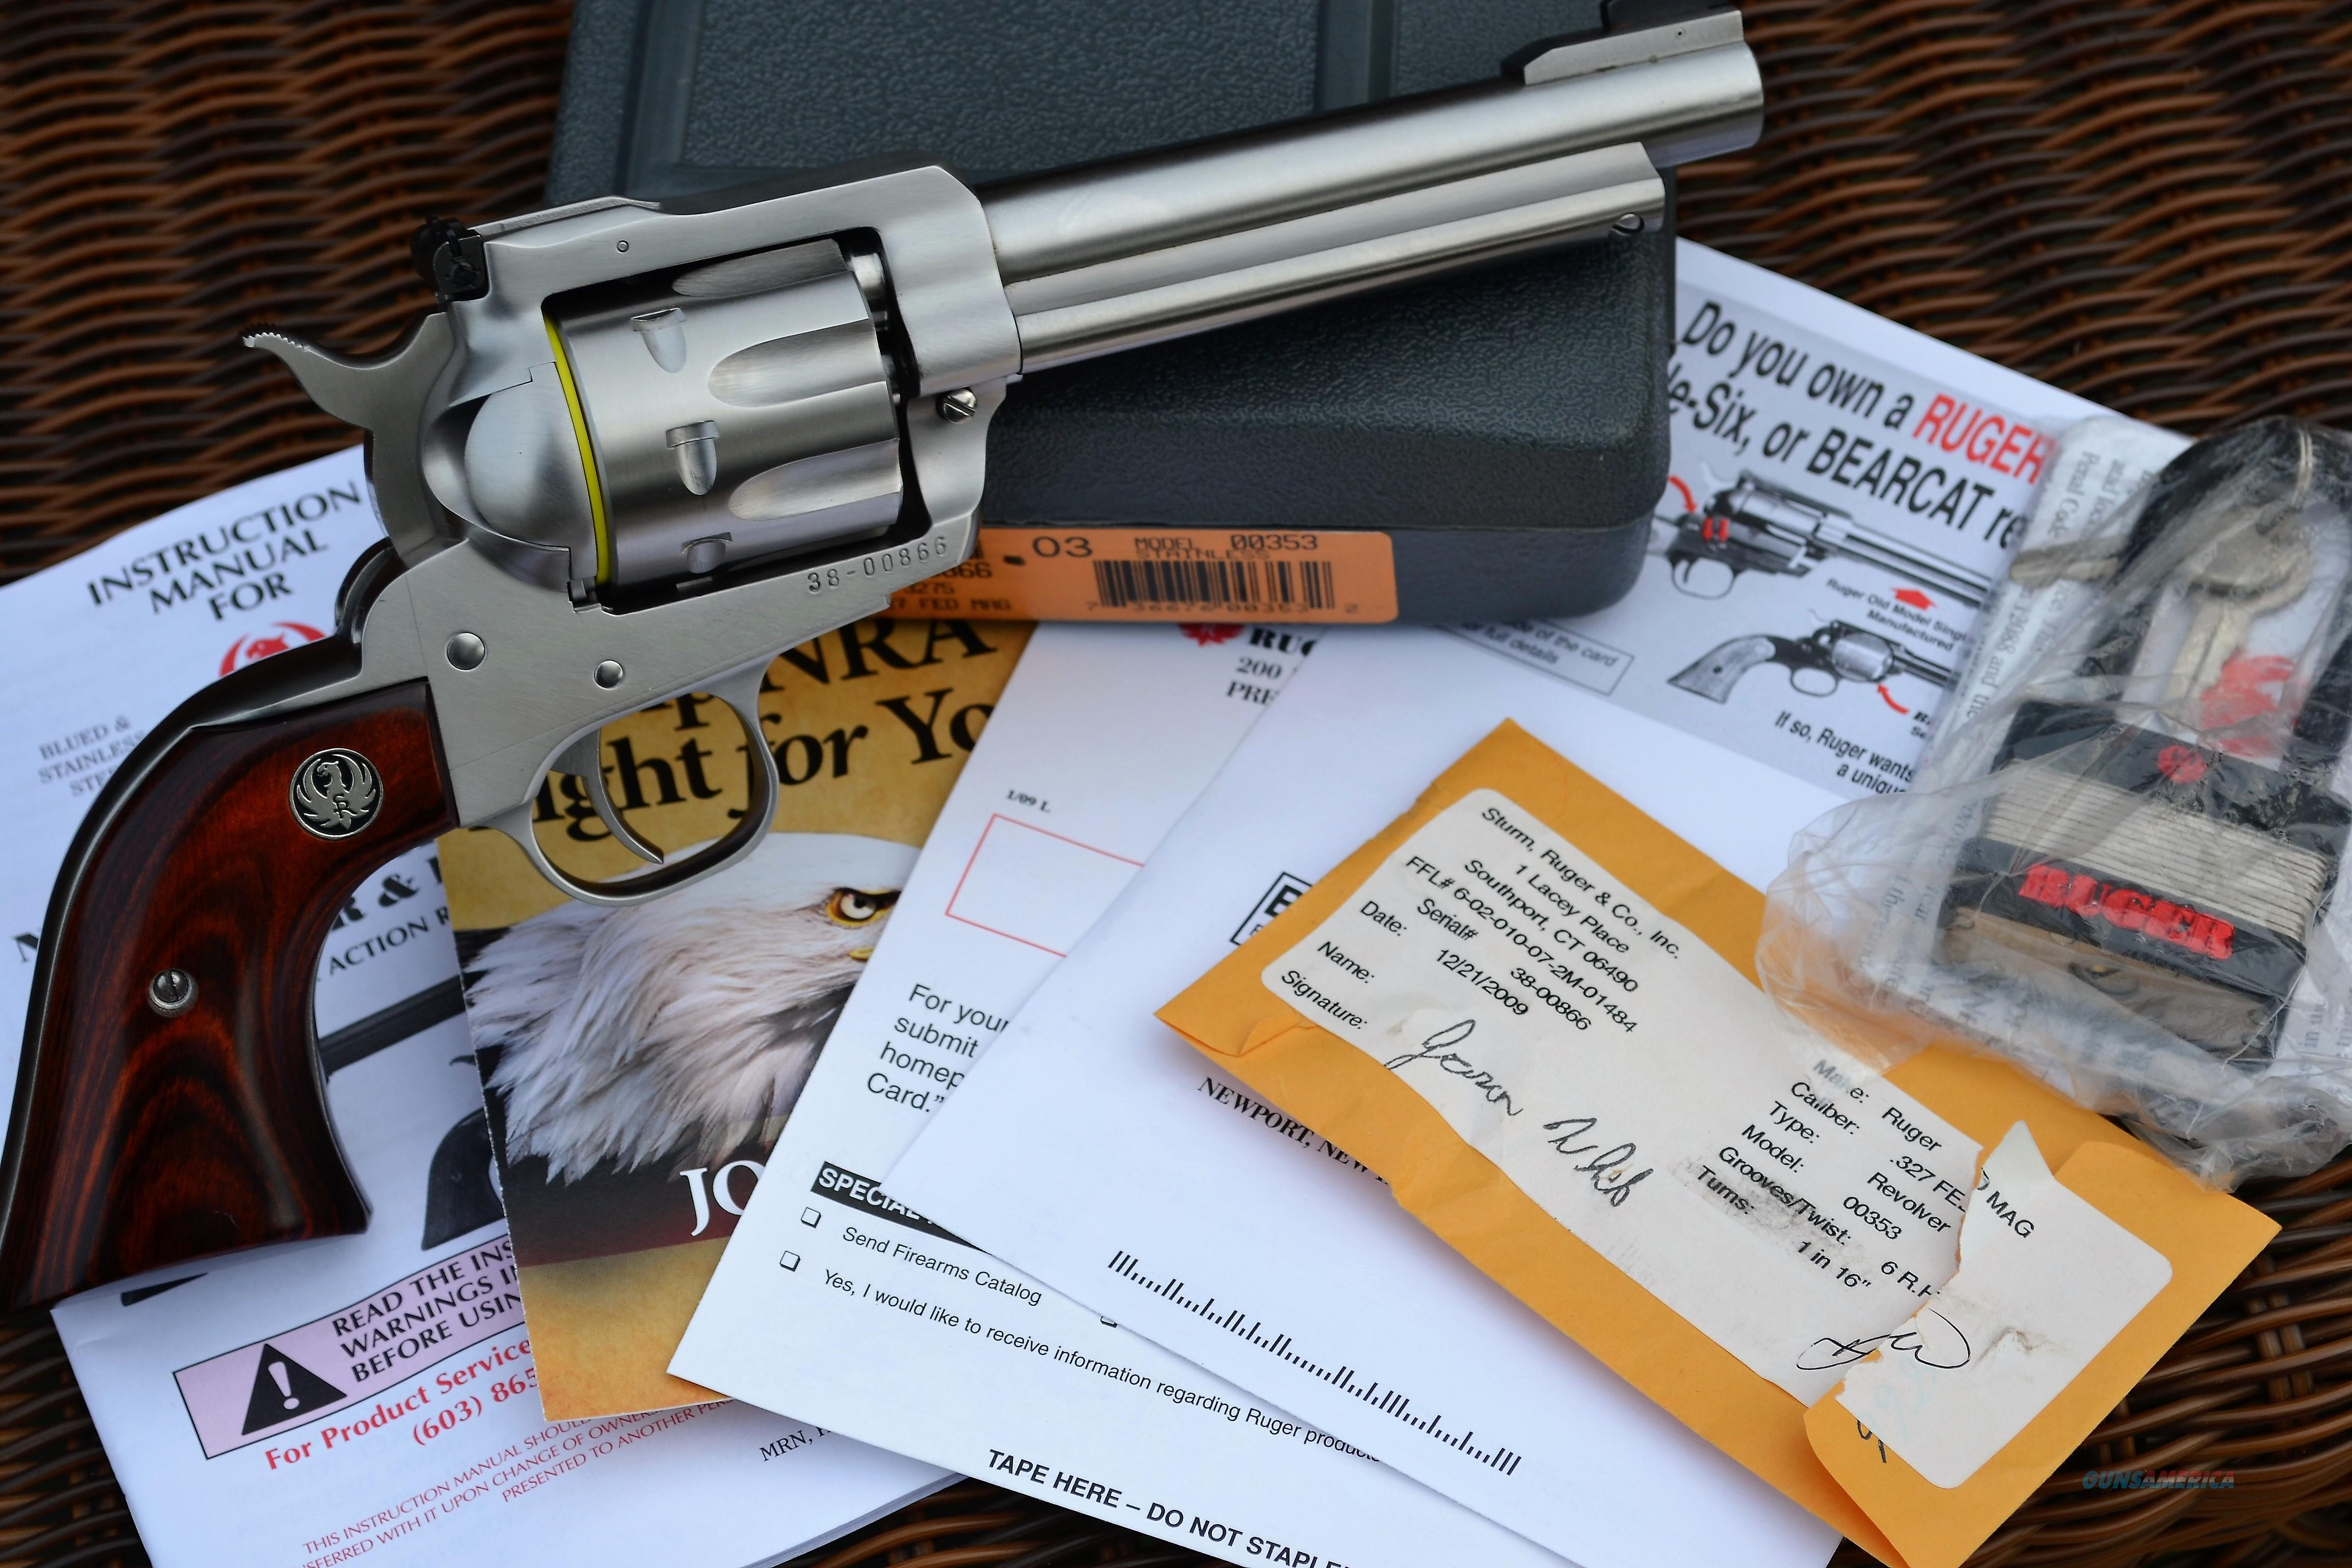 Ruger Blackhawk 327 Fed Mag Case, Papers 3 Digit Serial #   Guns > Pistols > Ruger Single Action Revolvers > Blackhawk Type